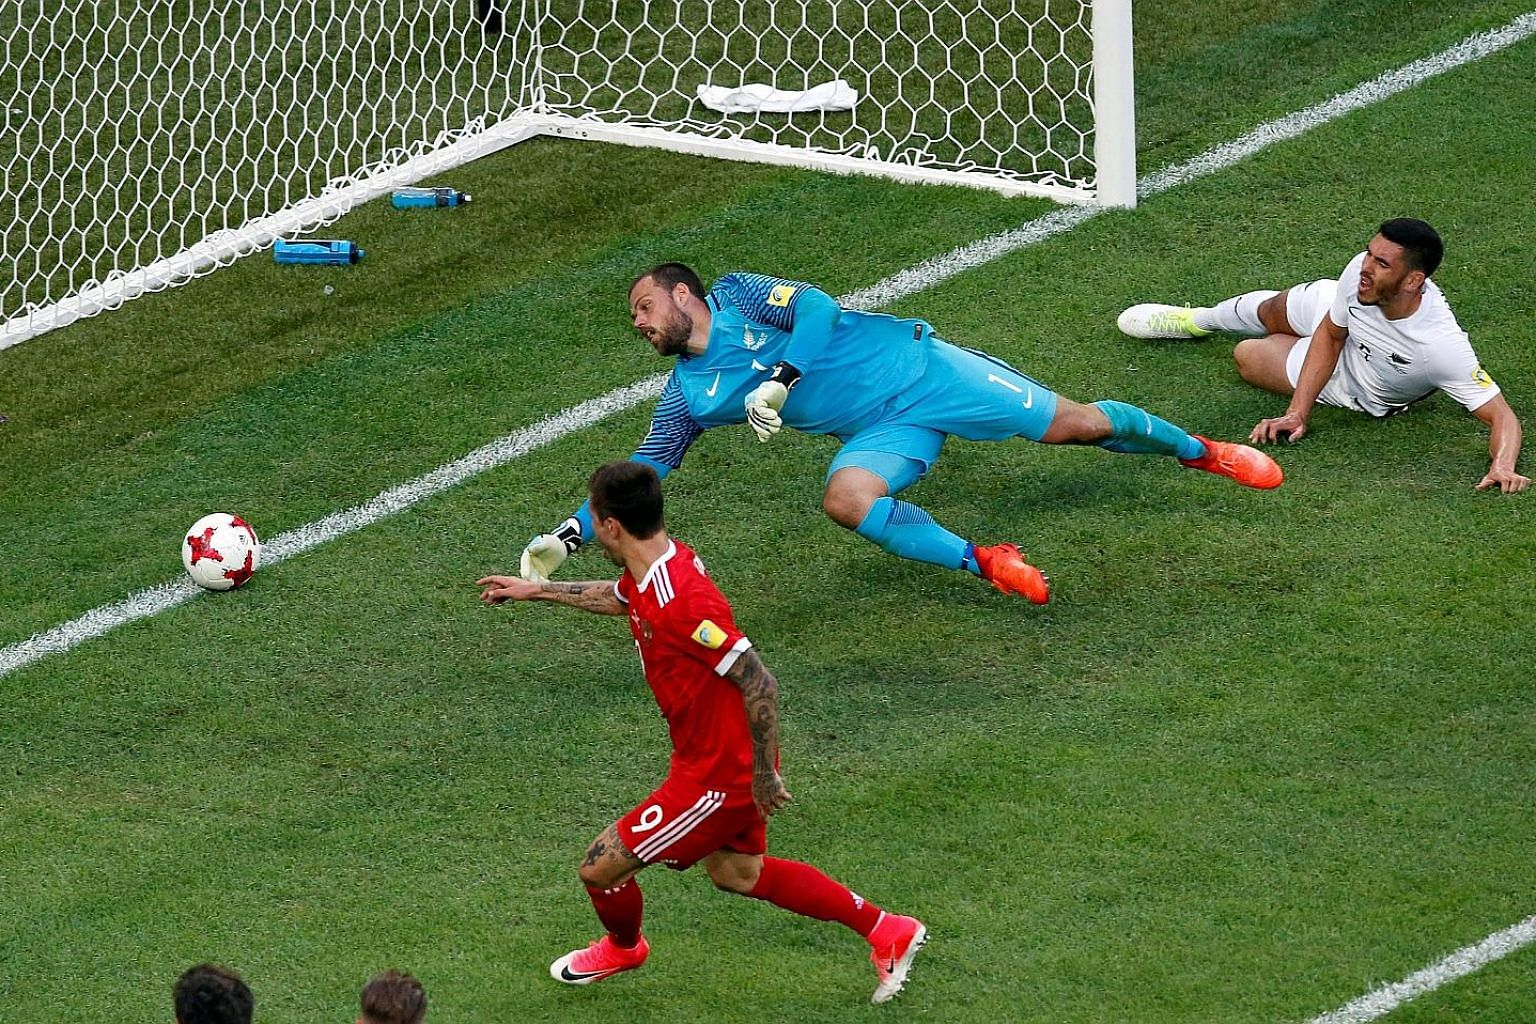 Russia's Fedor Smolov scoring his team's second goal against New Zealand in the opening match of the Confederations Cup on Saturday. The match ended 2-0 in favour of the Russians and they will face a tougher test against Euro 2016 champions Portugal